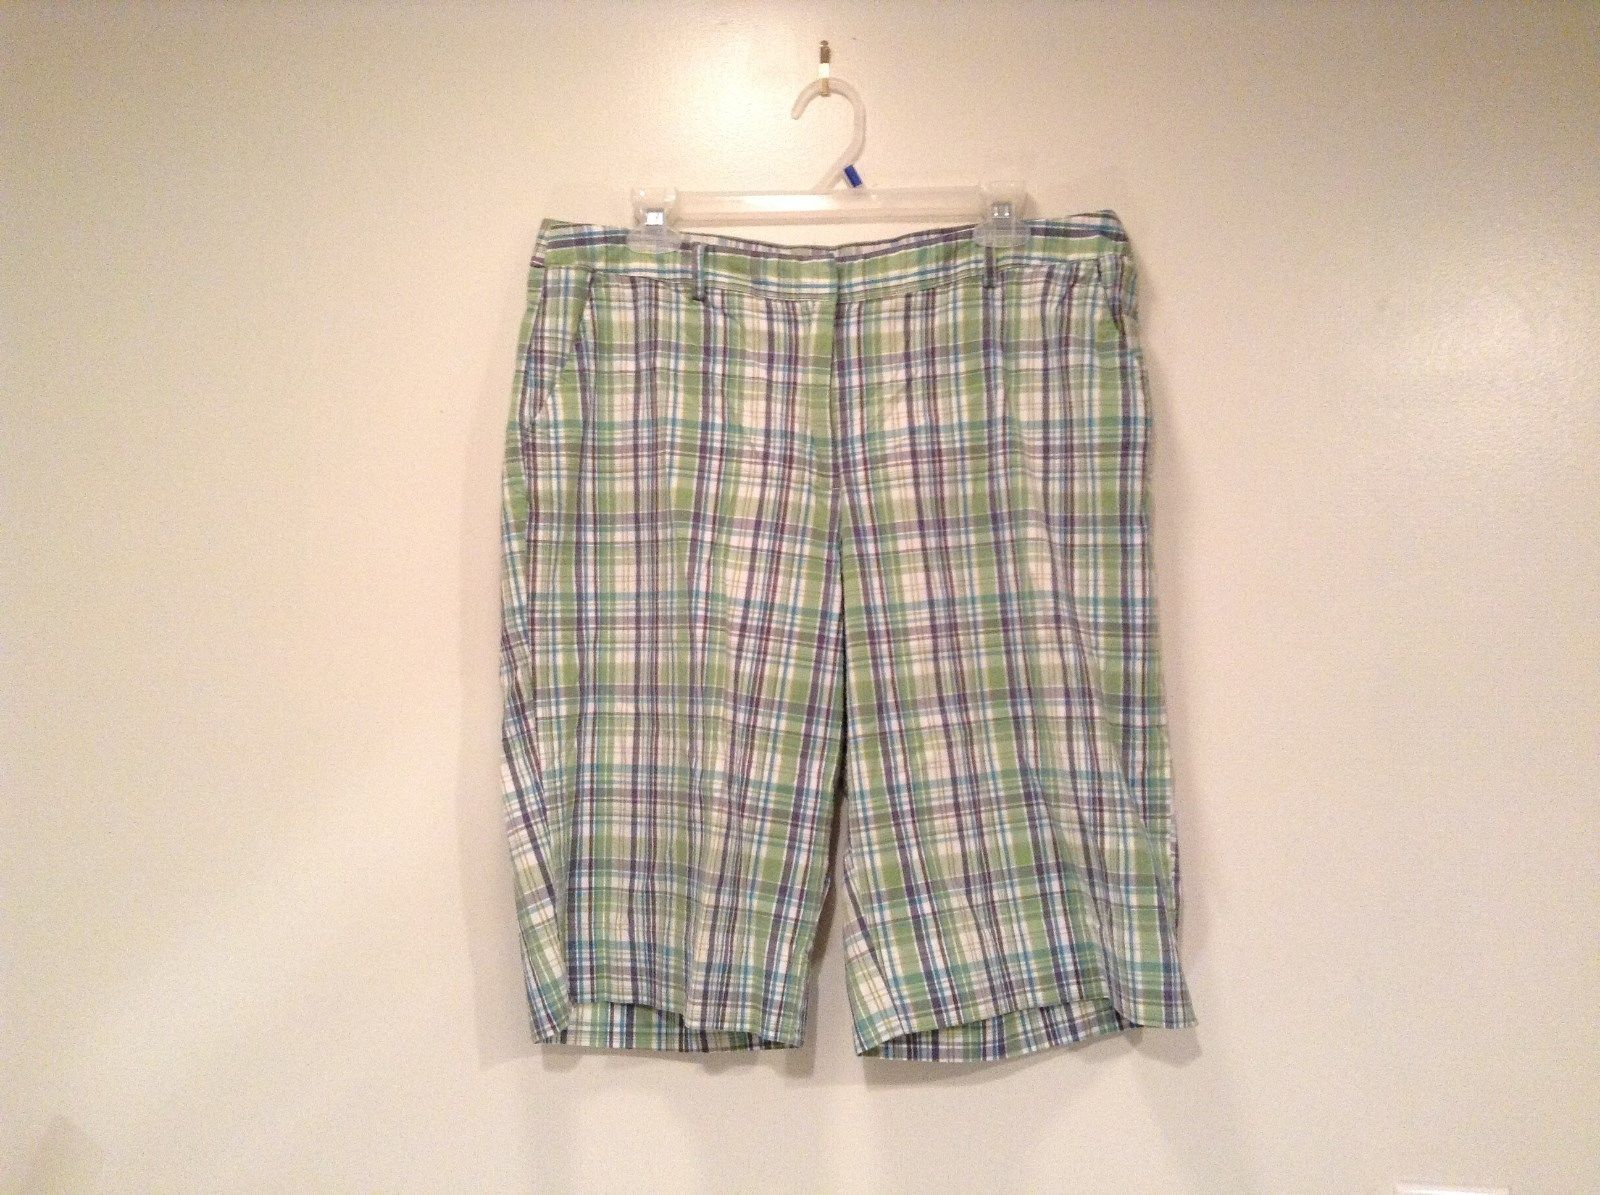 Green and Blue Plaid Casual Shorts Size 16 Kim Rogers Front and Back Pockets